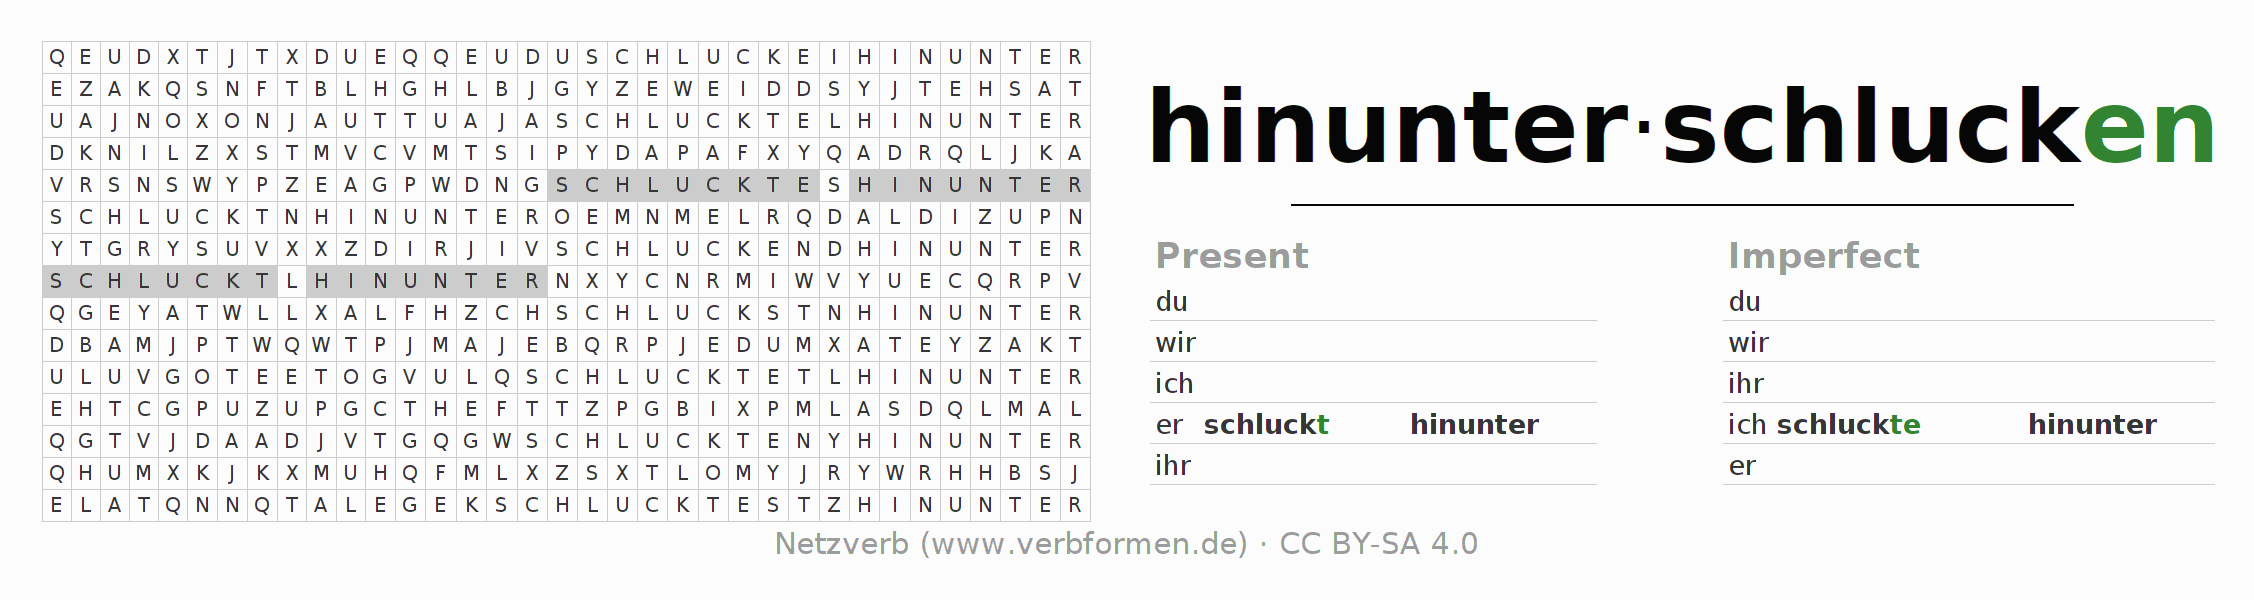 Word search puzzle for the conjugation of the verb hinunterschlucken